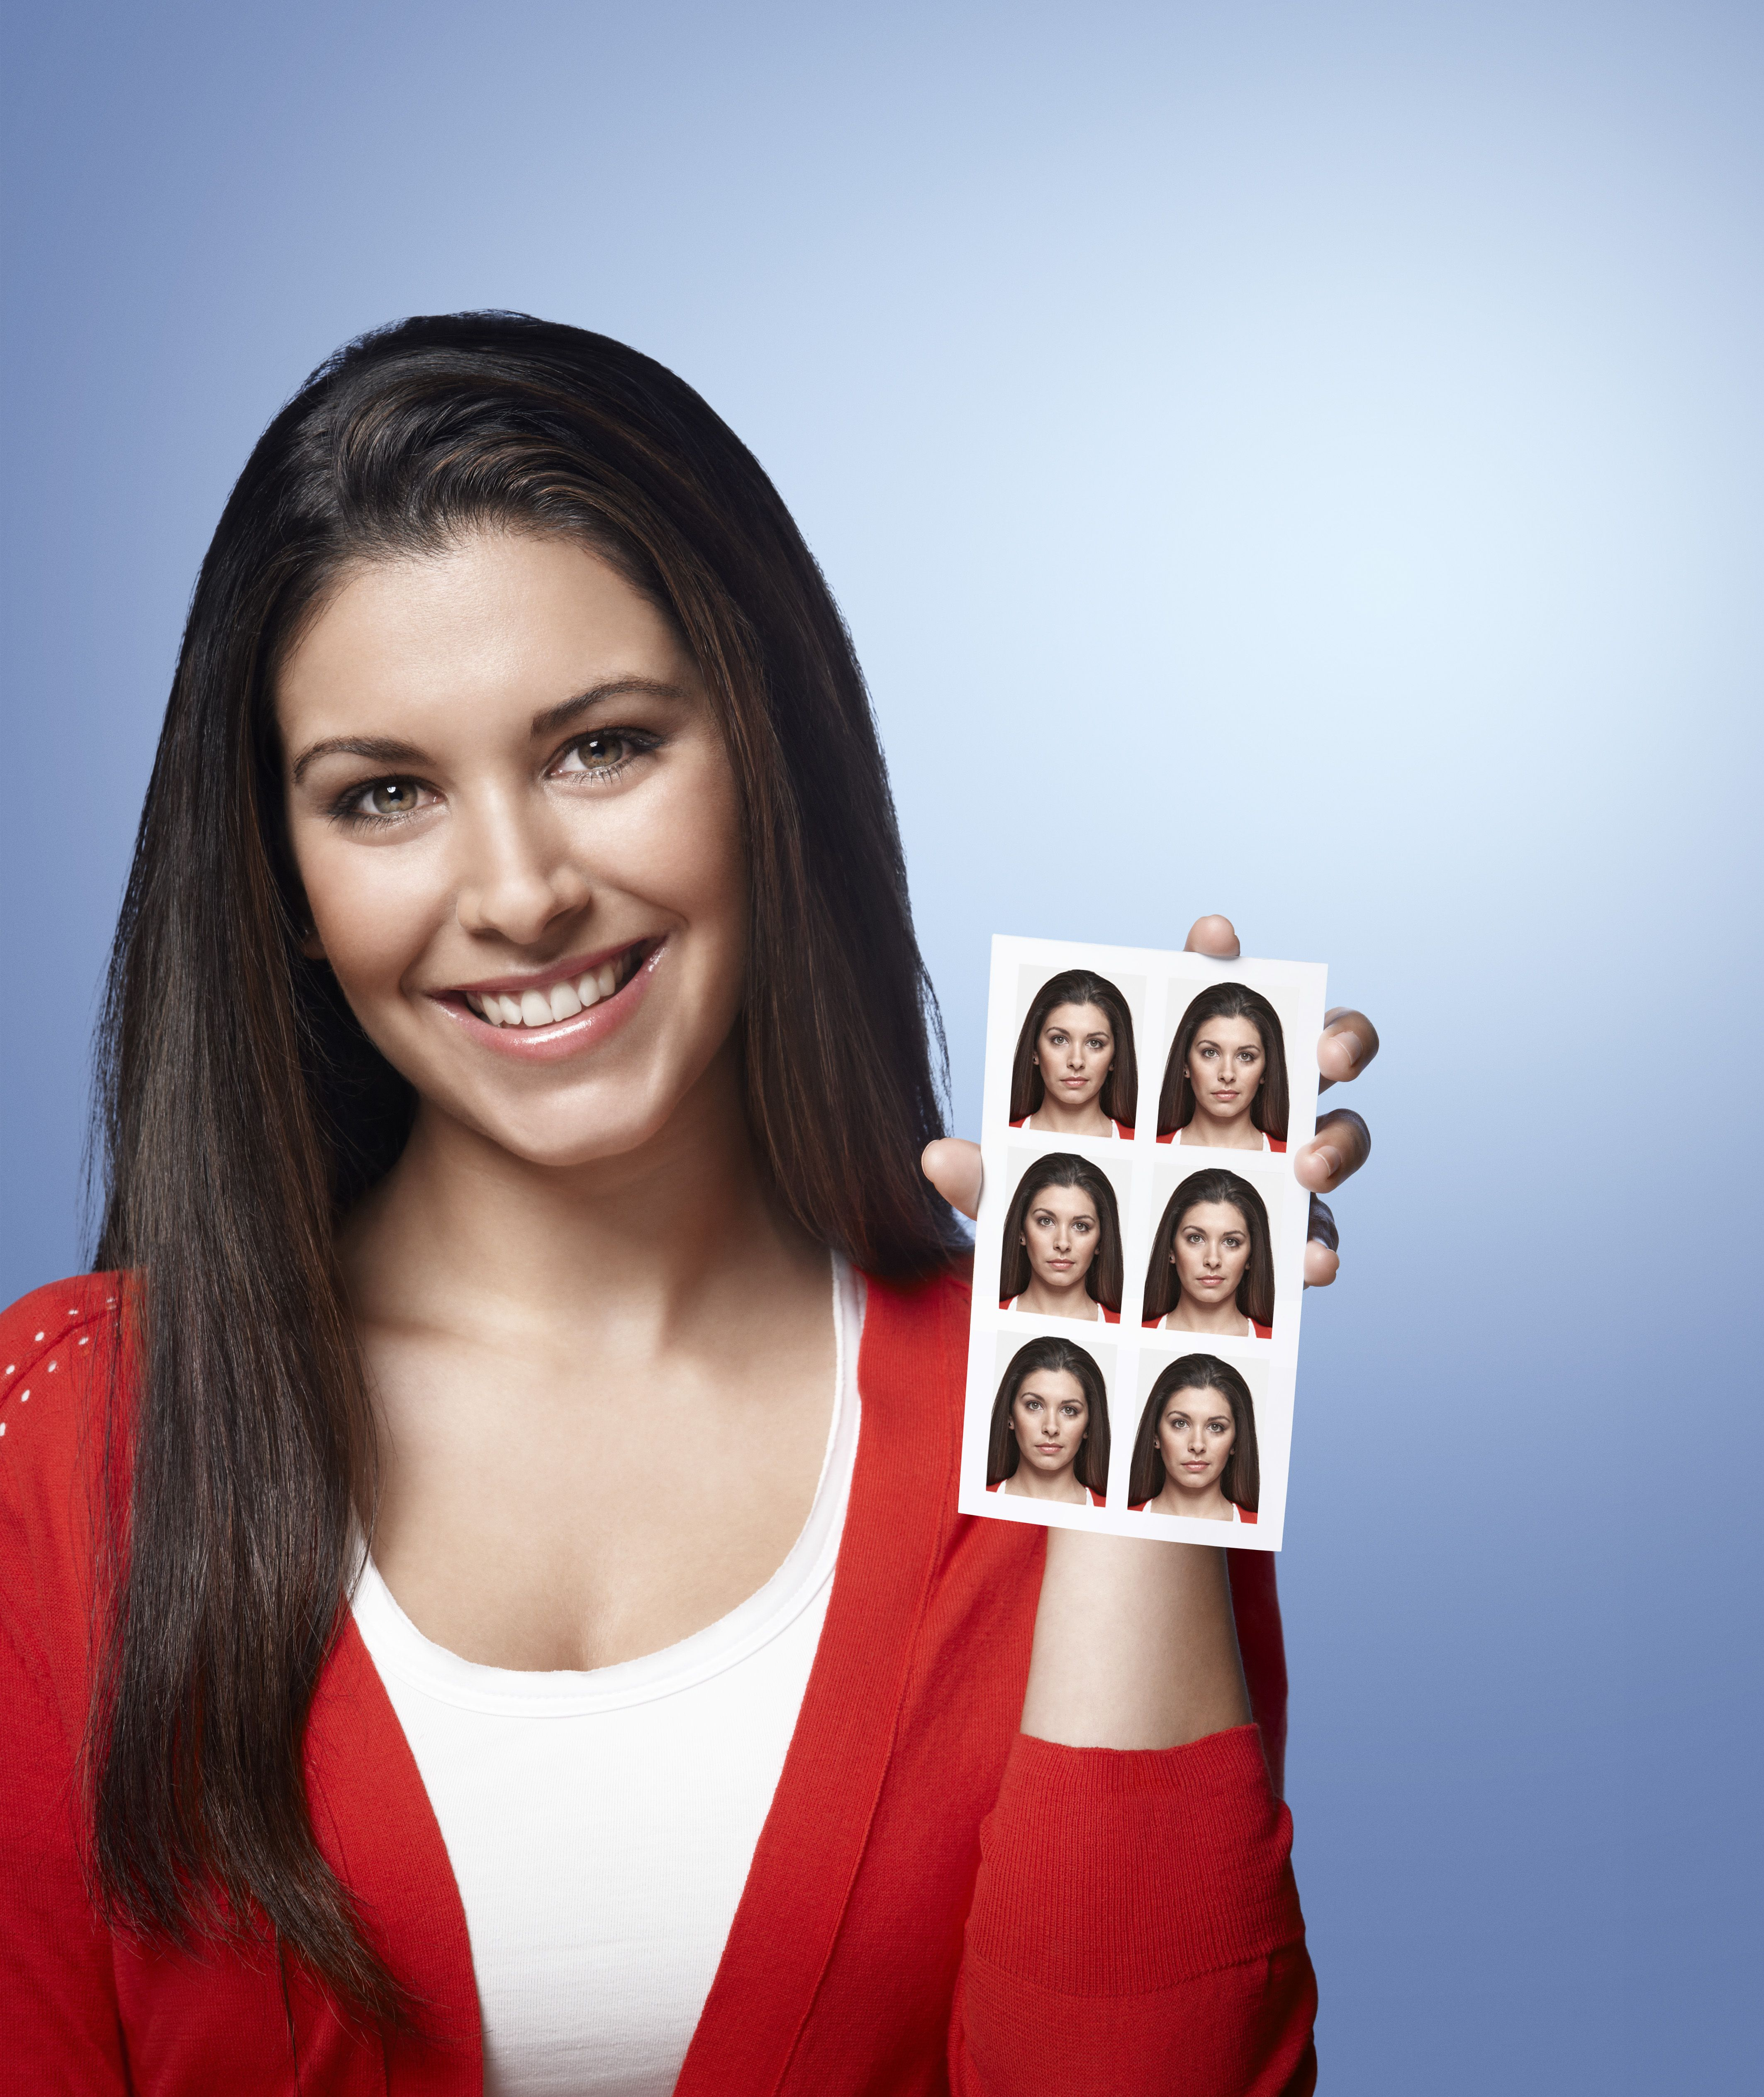 Did You Know We Do Passport And Licence Photos? Simply Pop Into One Of Our